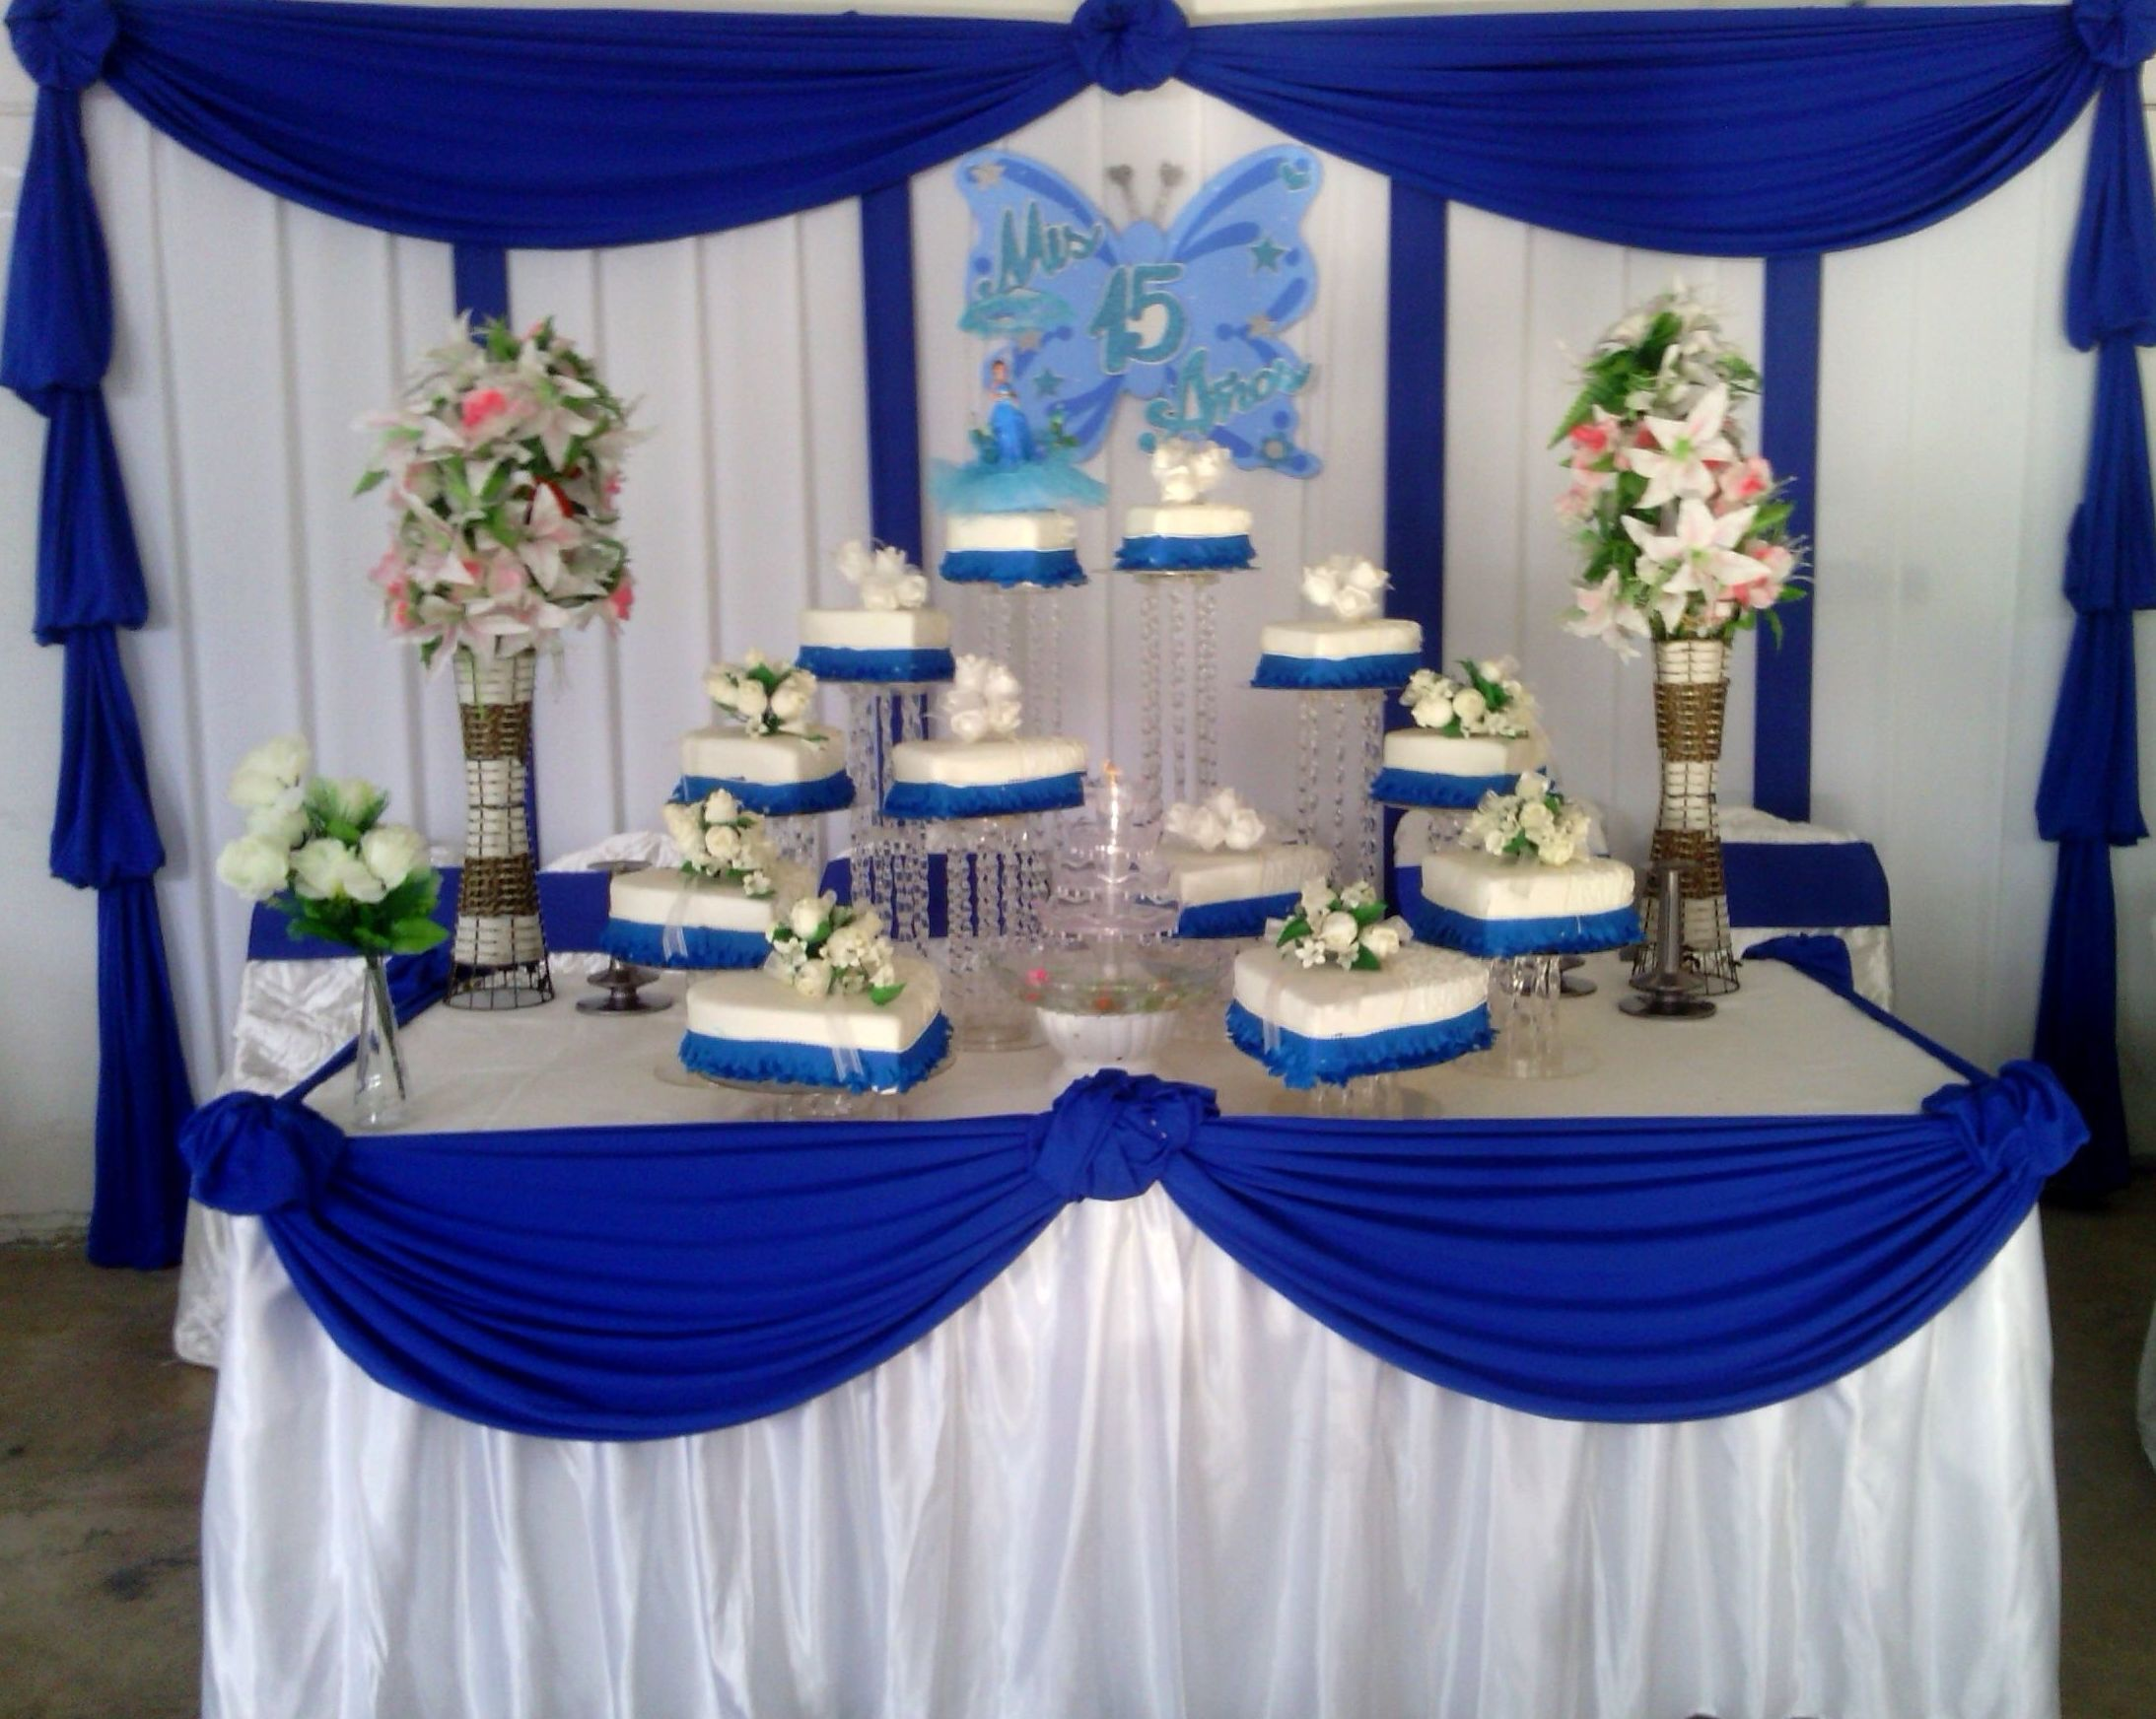 Decoraciones en color azul especial para quince a os for Decoracion en tonos turquesa